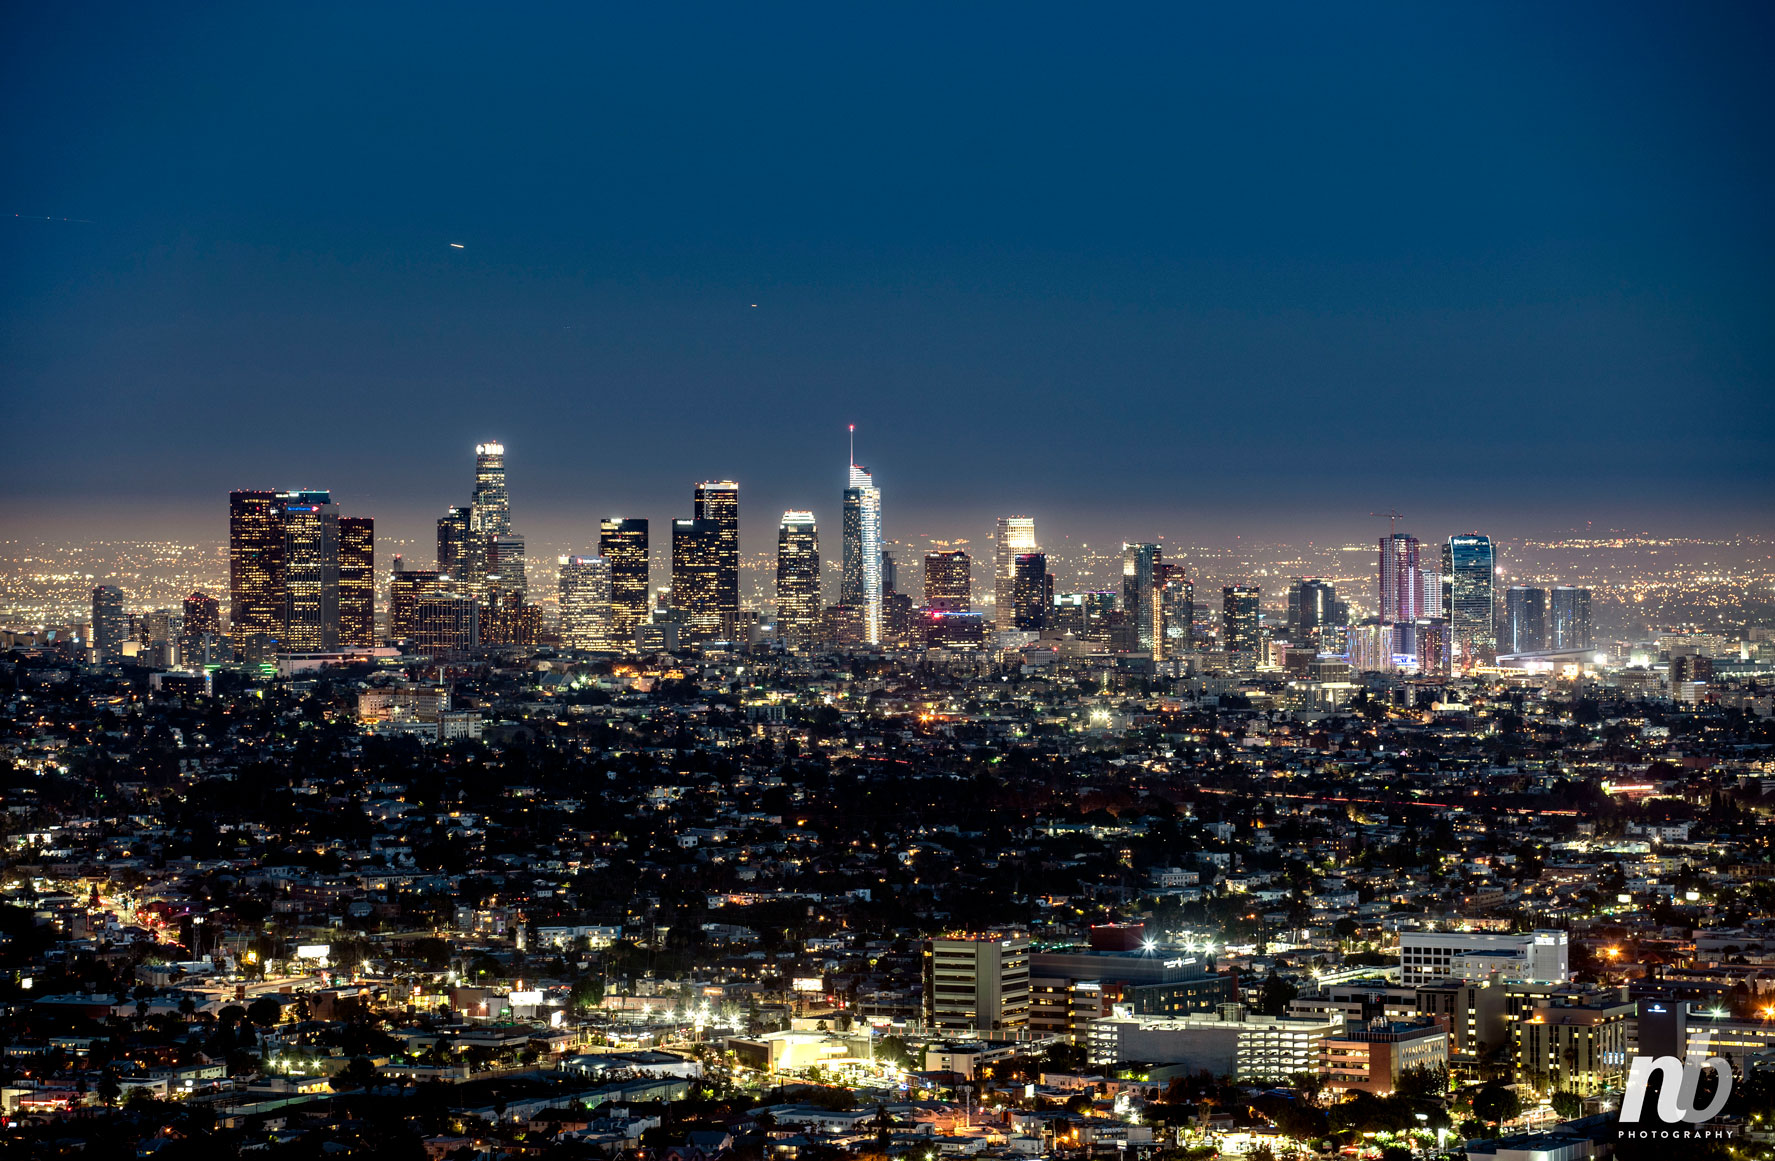 Photograph of Los Angeles Skyline.